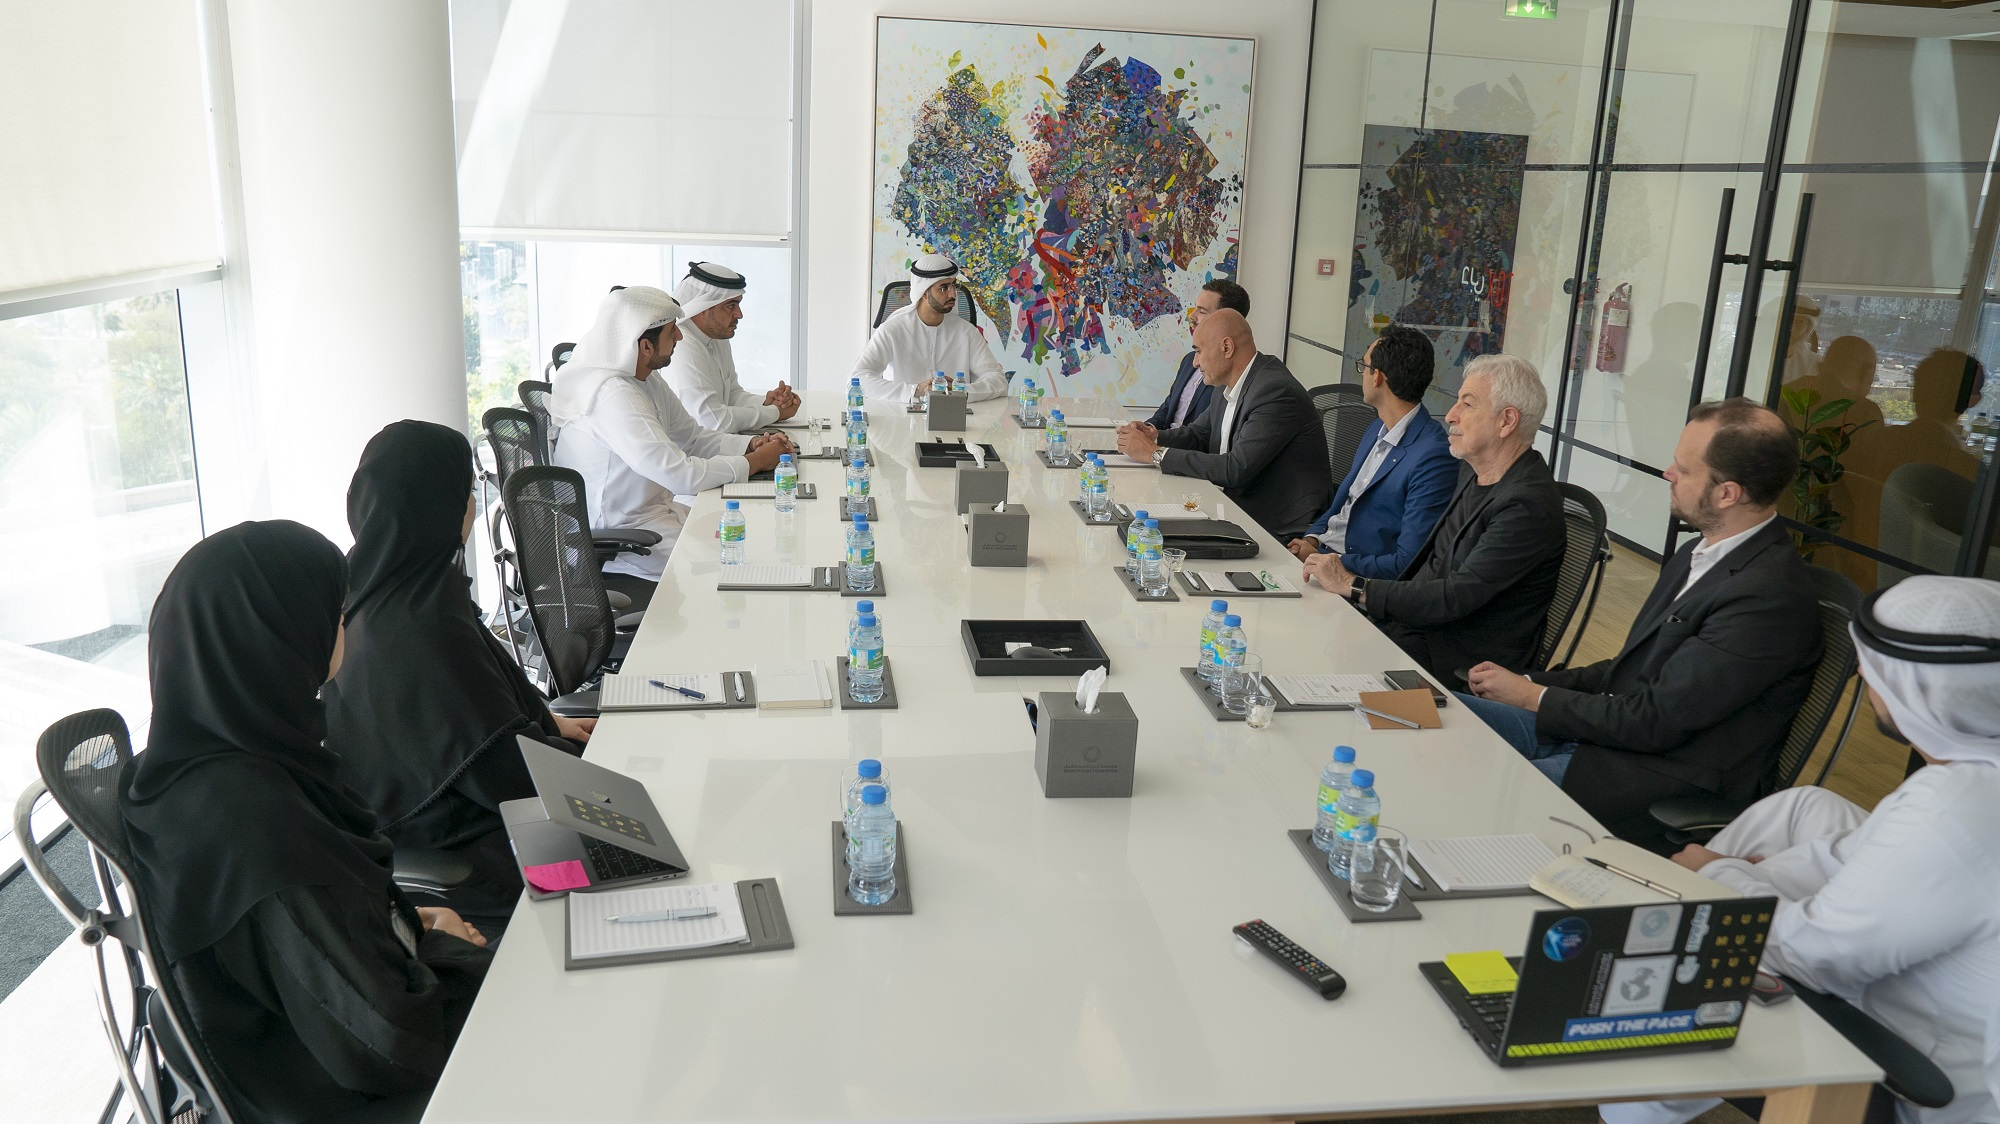 dubai future council on artificial intelligence holds its first meeting  2